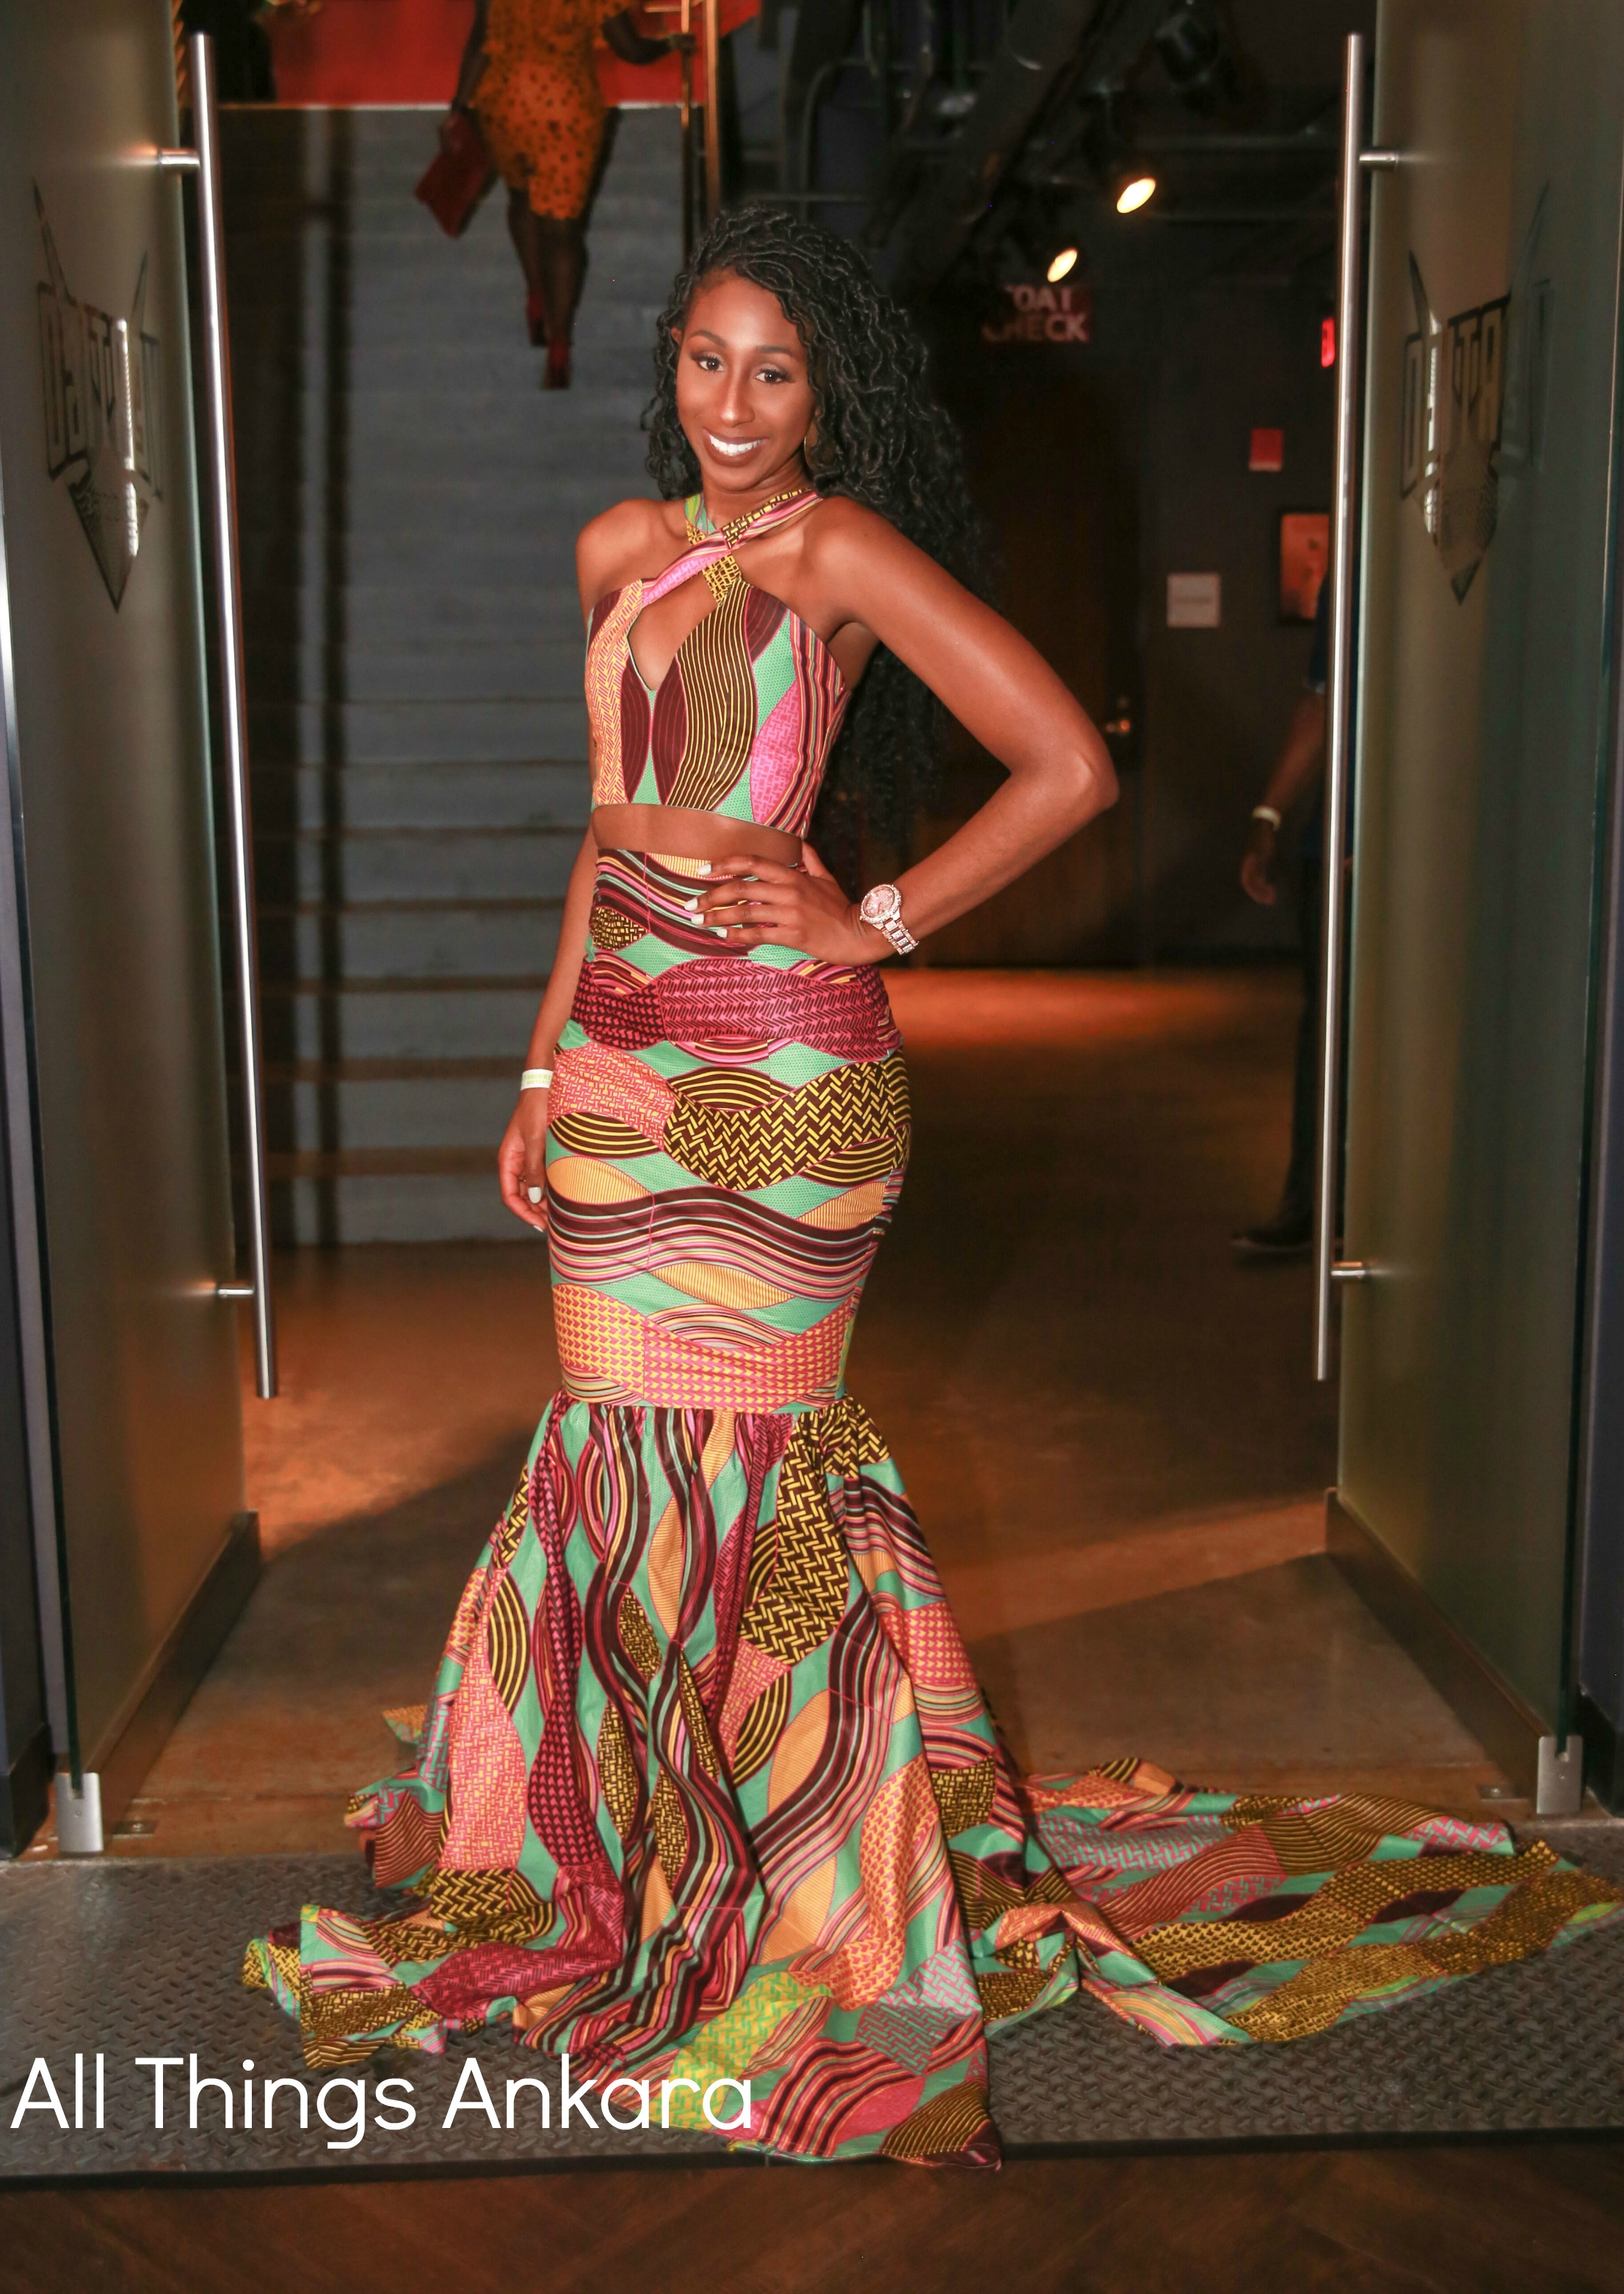 ball-unseen-photos-from-all-things-ankaras-best-dressed-women-at-gwb-commissions-7th-annual-green-white-blue-ball-2016-9